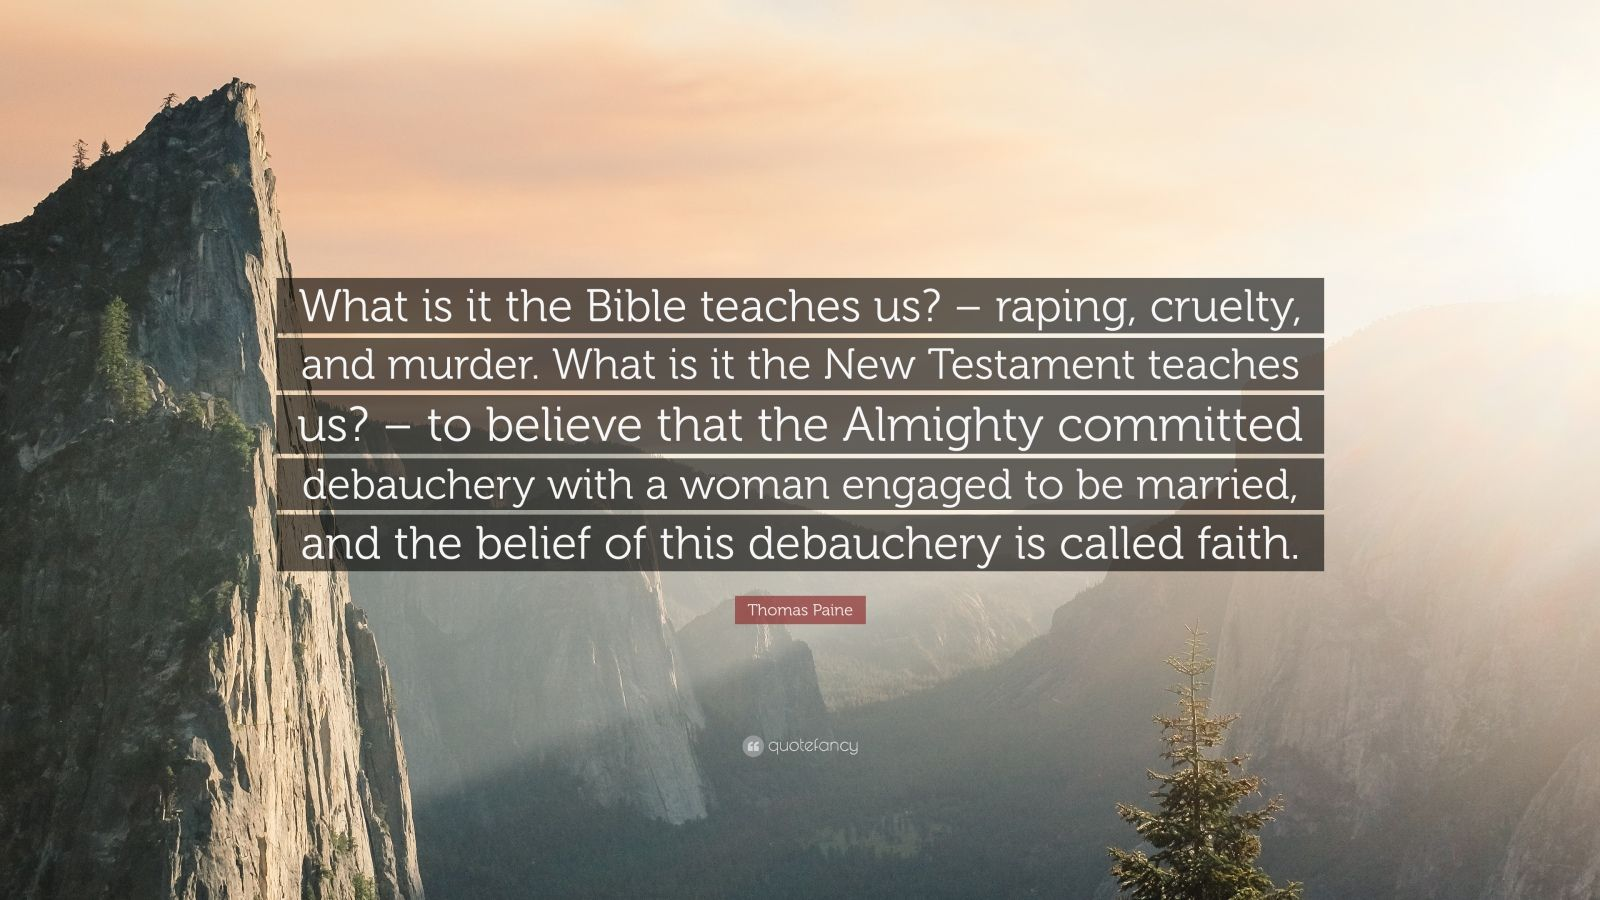 """Thomas Paine Quote: """"What is it the Bible teaches us? – raping, cruelty, and murder. What is it the New Testament teaches us? – to believe that the Almighty committed debauchery with a woman engaged to be married, and the belief of this debauchery is called faith."""""""